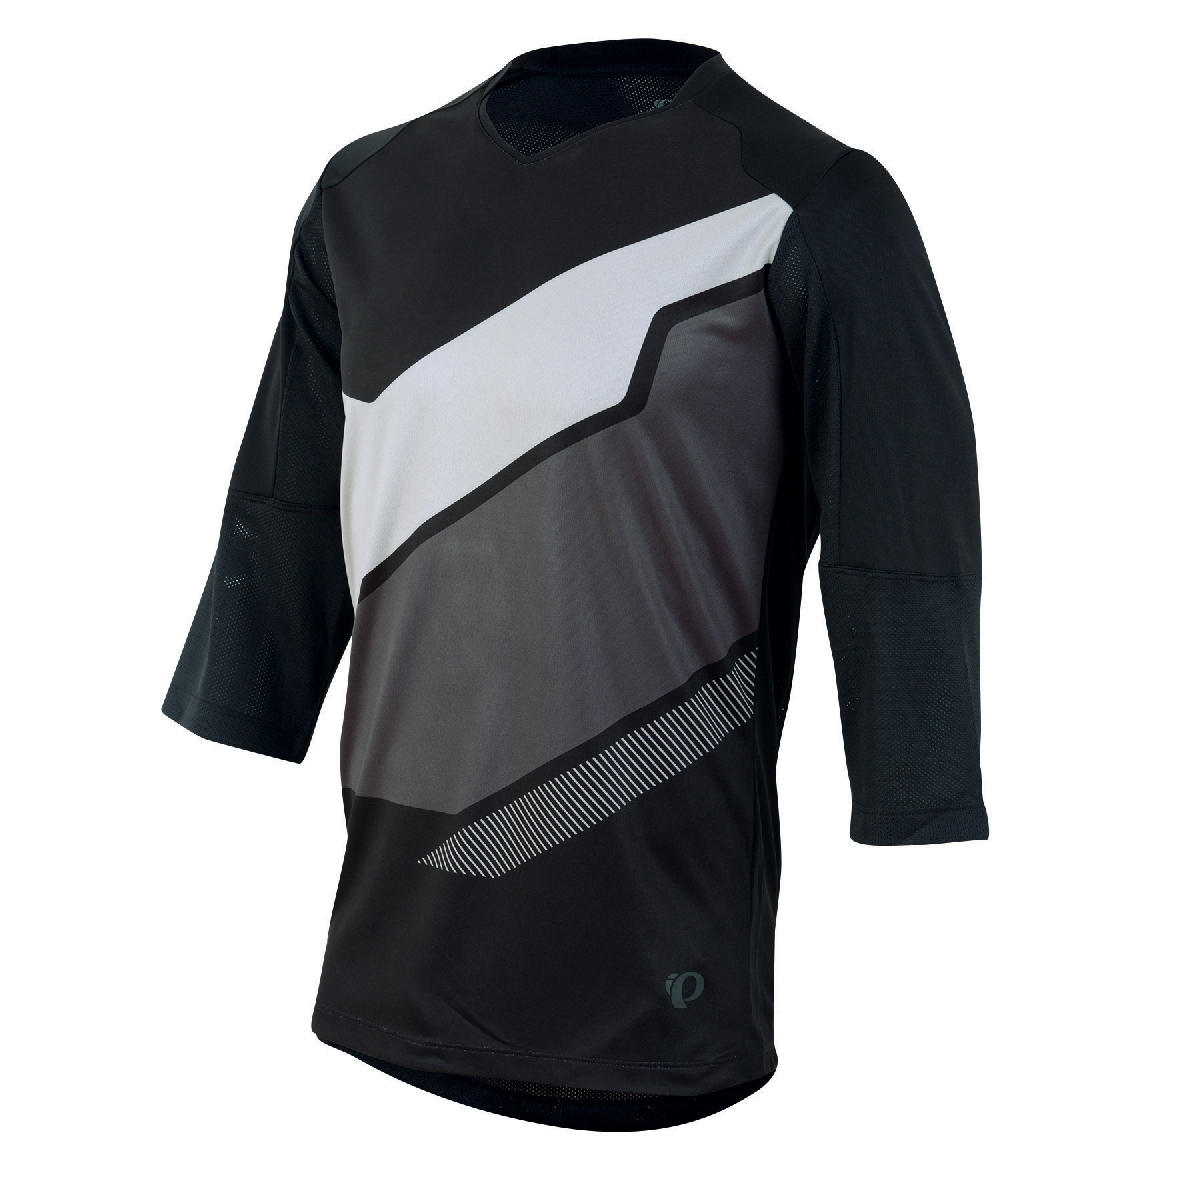 Pearl Izumi Launch 3 4 Sleeve Cycling Jersey Men's Size S Black U.S.A. & Canada